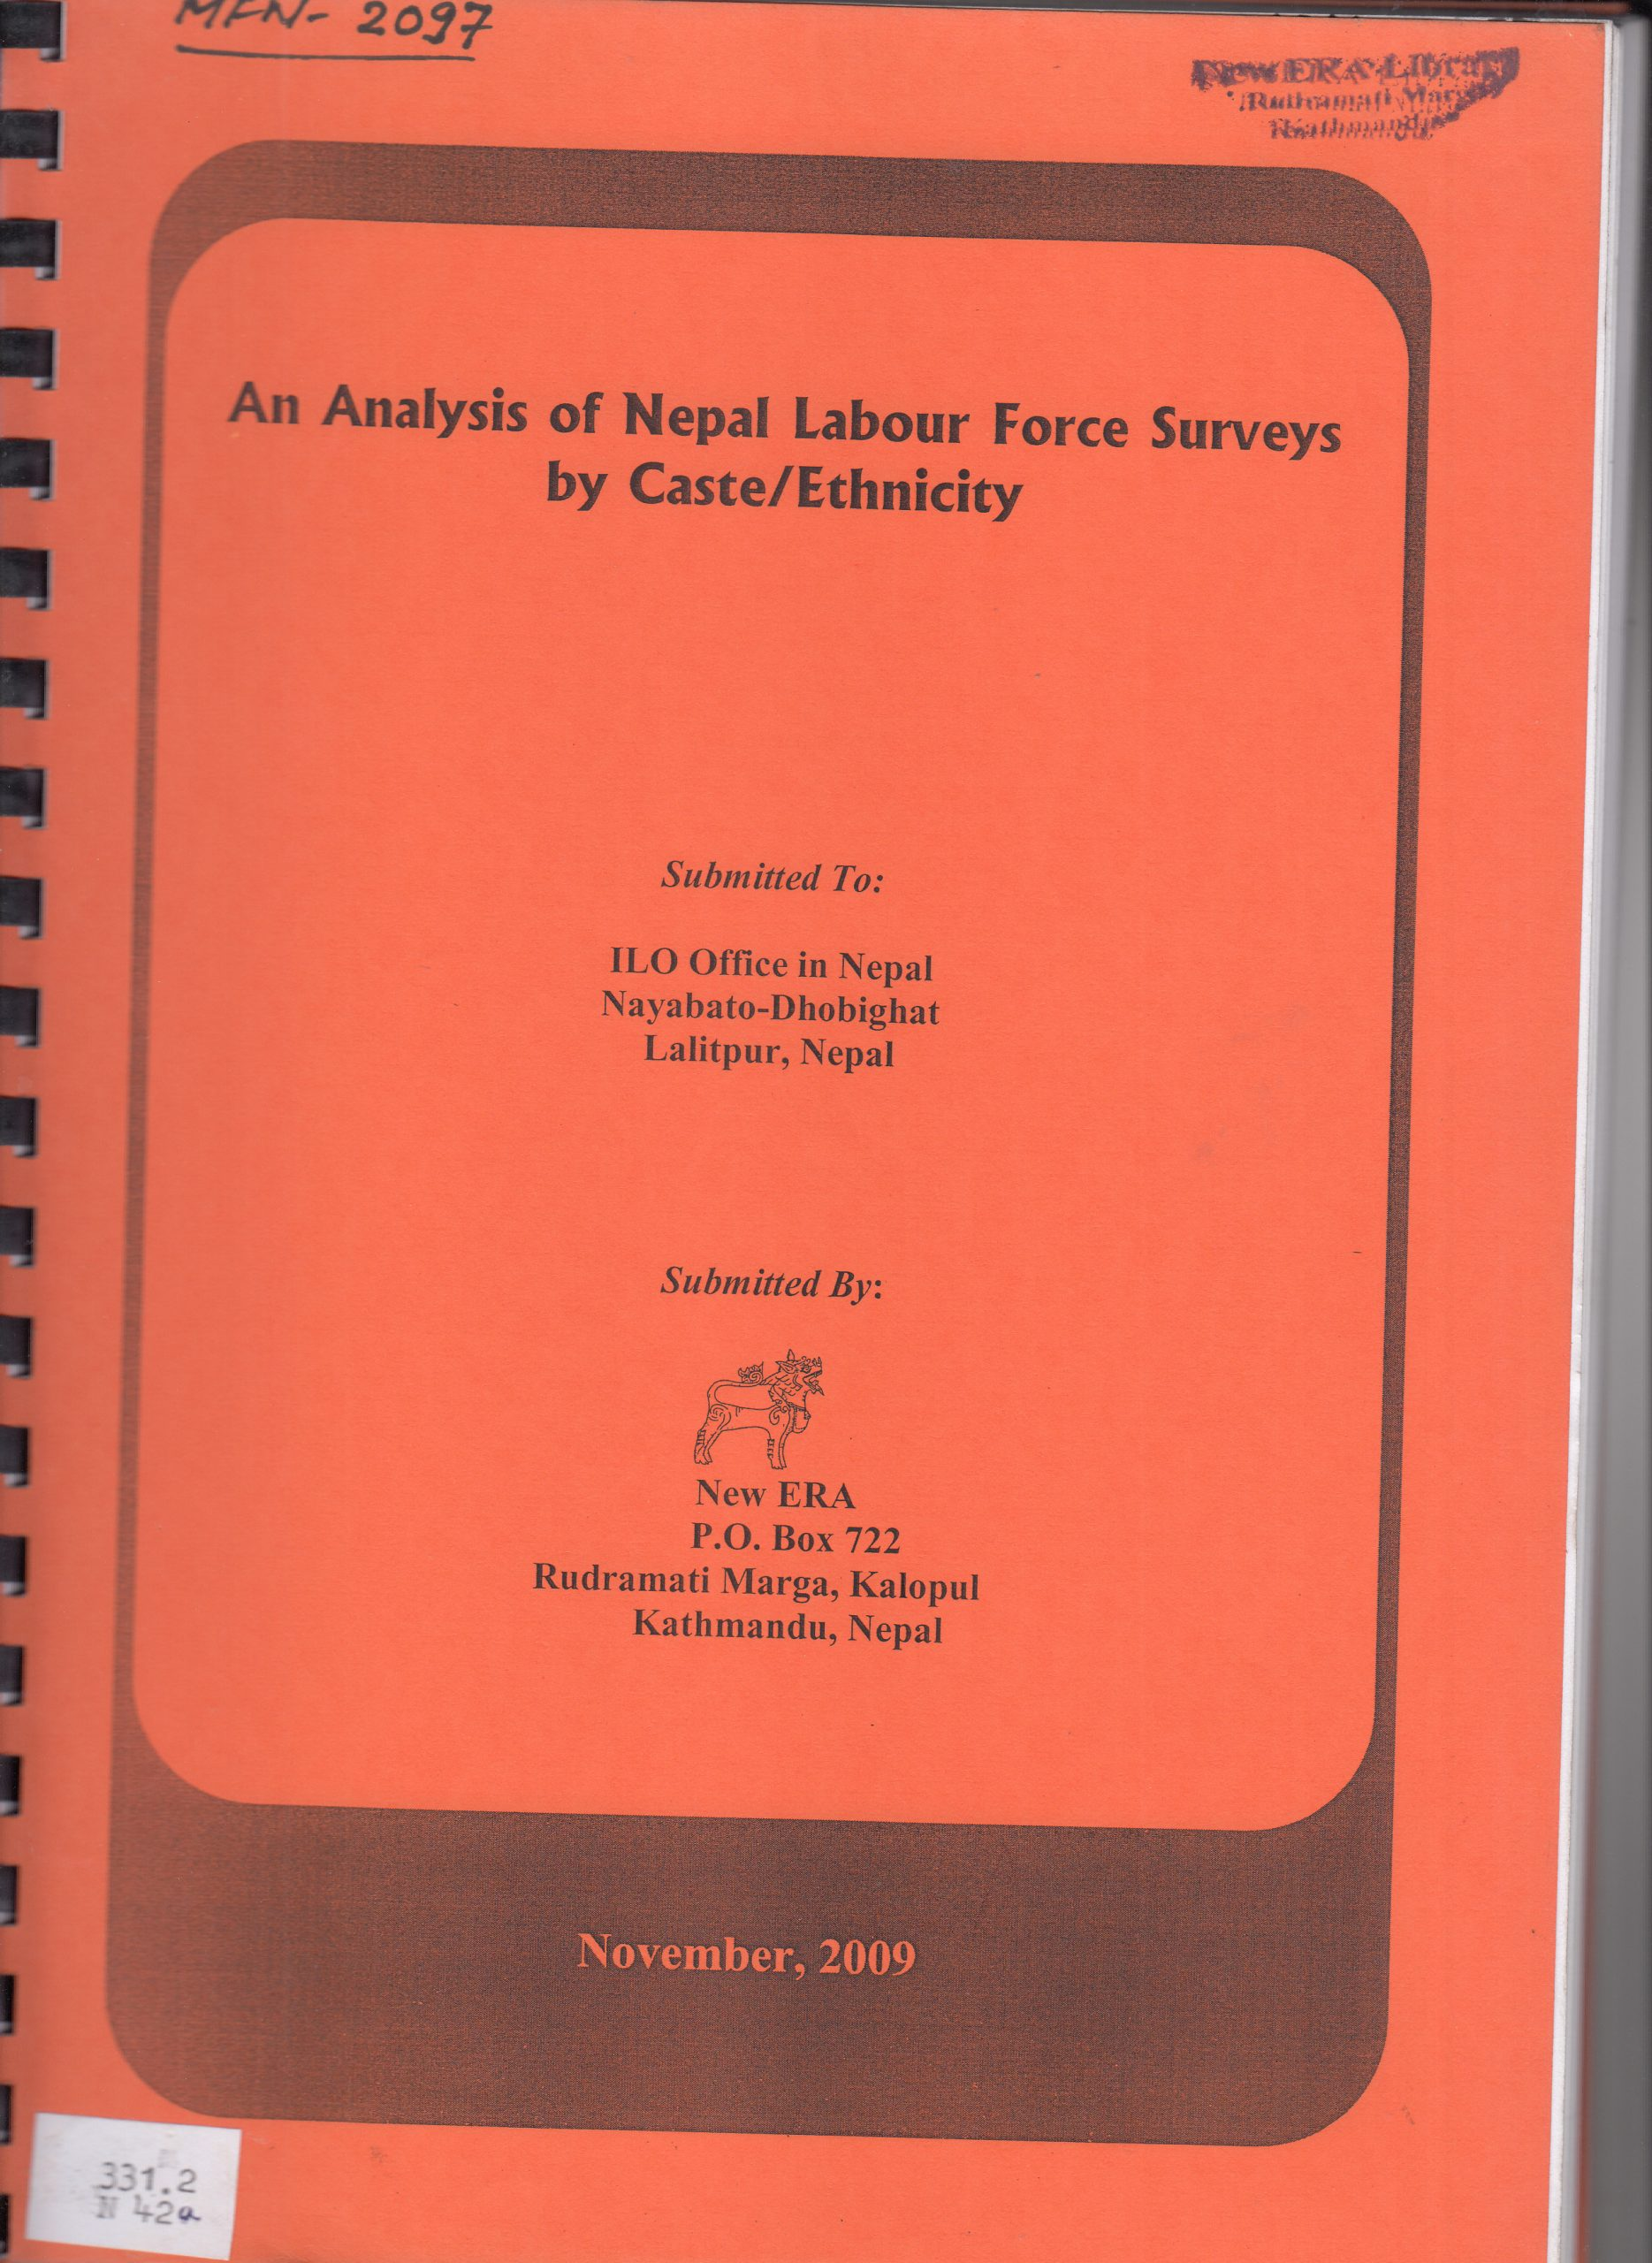 An Analysis of Nepal Labor Force Surveys by Caste/Ethnicity